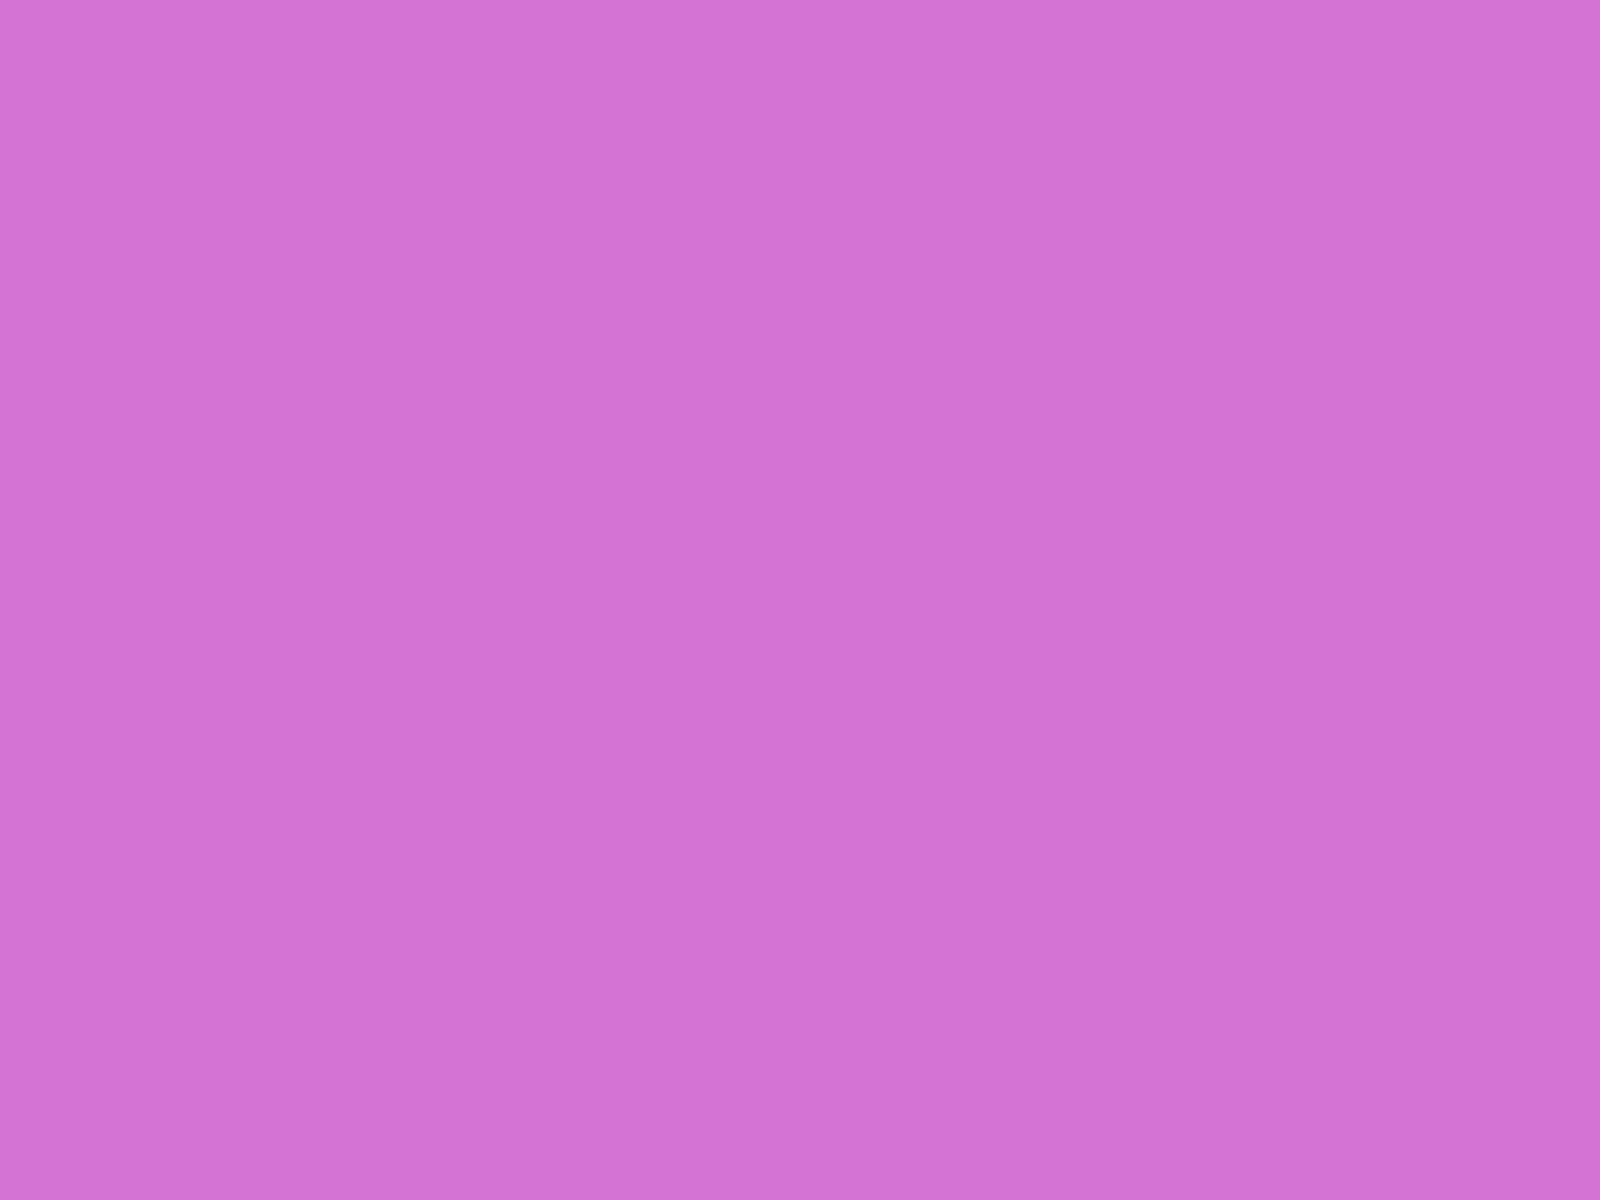 1600x1200 French Mauve Solid Color Background